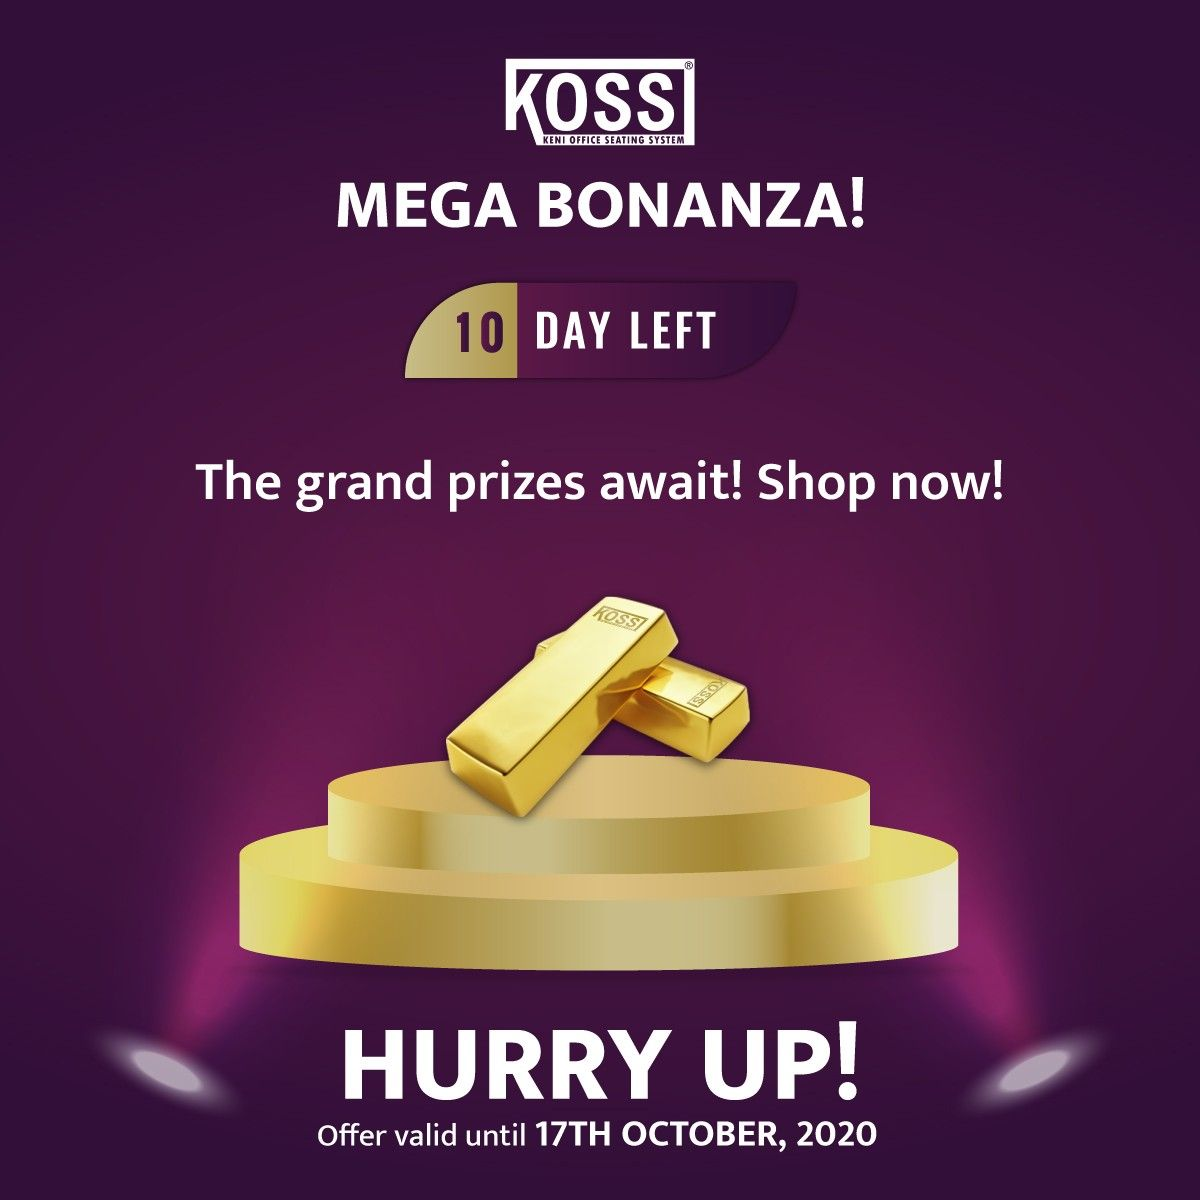 Don't miss the chance to win grand prizes! Participate in the mega bonanza! Hurry, only 10 days left for the offer to end! . . . #kossfurniture #furniturestore #furnituremaker #officefurnituresolutions #makeinindia #kossfurnitures #kosschairs #furnituresale #furnitureart #furnituredecor #officefurniture #moderndesign #furnituresale #leapchair #officechair #deskchair #furnitureforsale #furnituremaking #furnitureart #bigbonanza #bonanza #jackpot #jackpotwinner